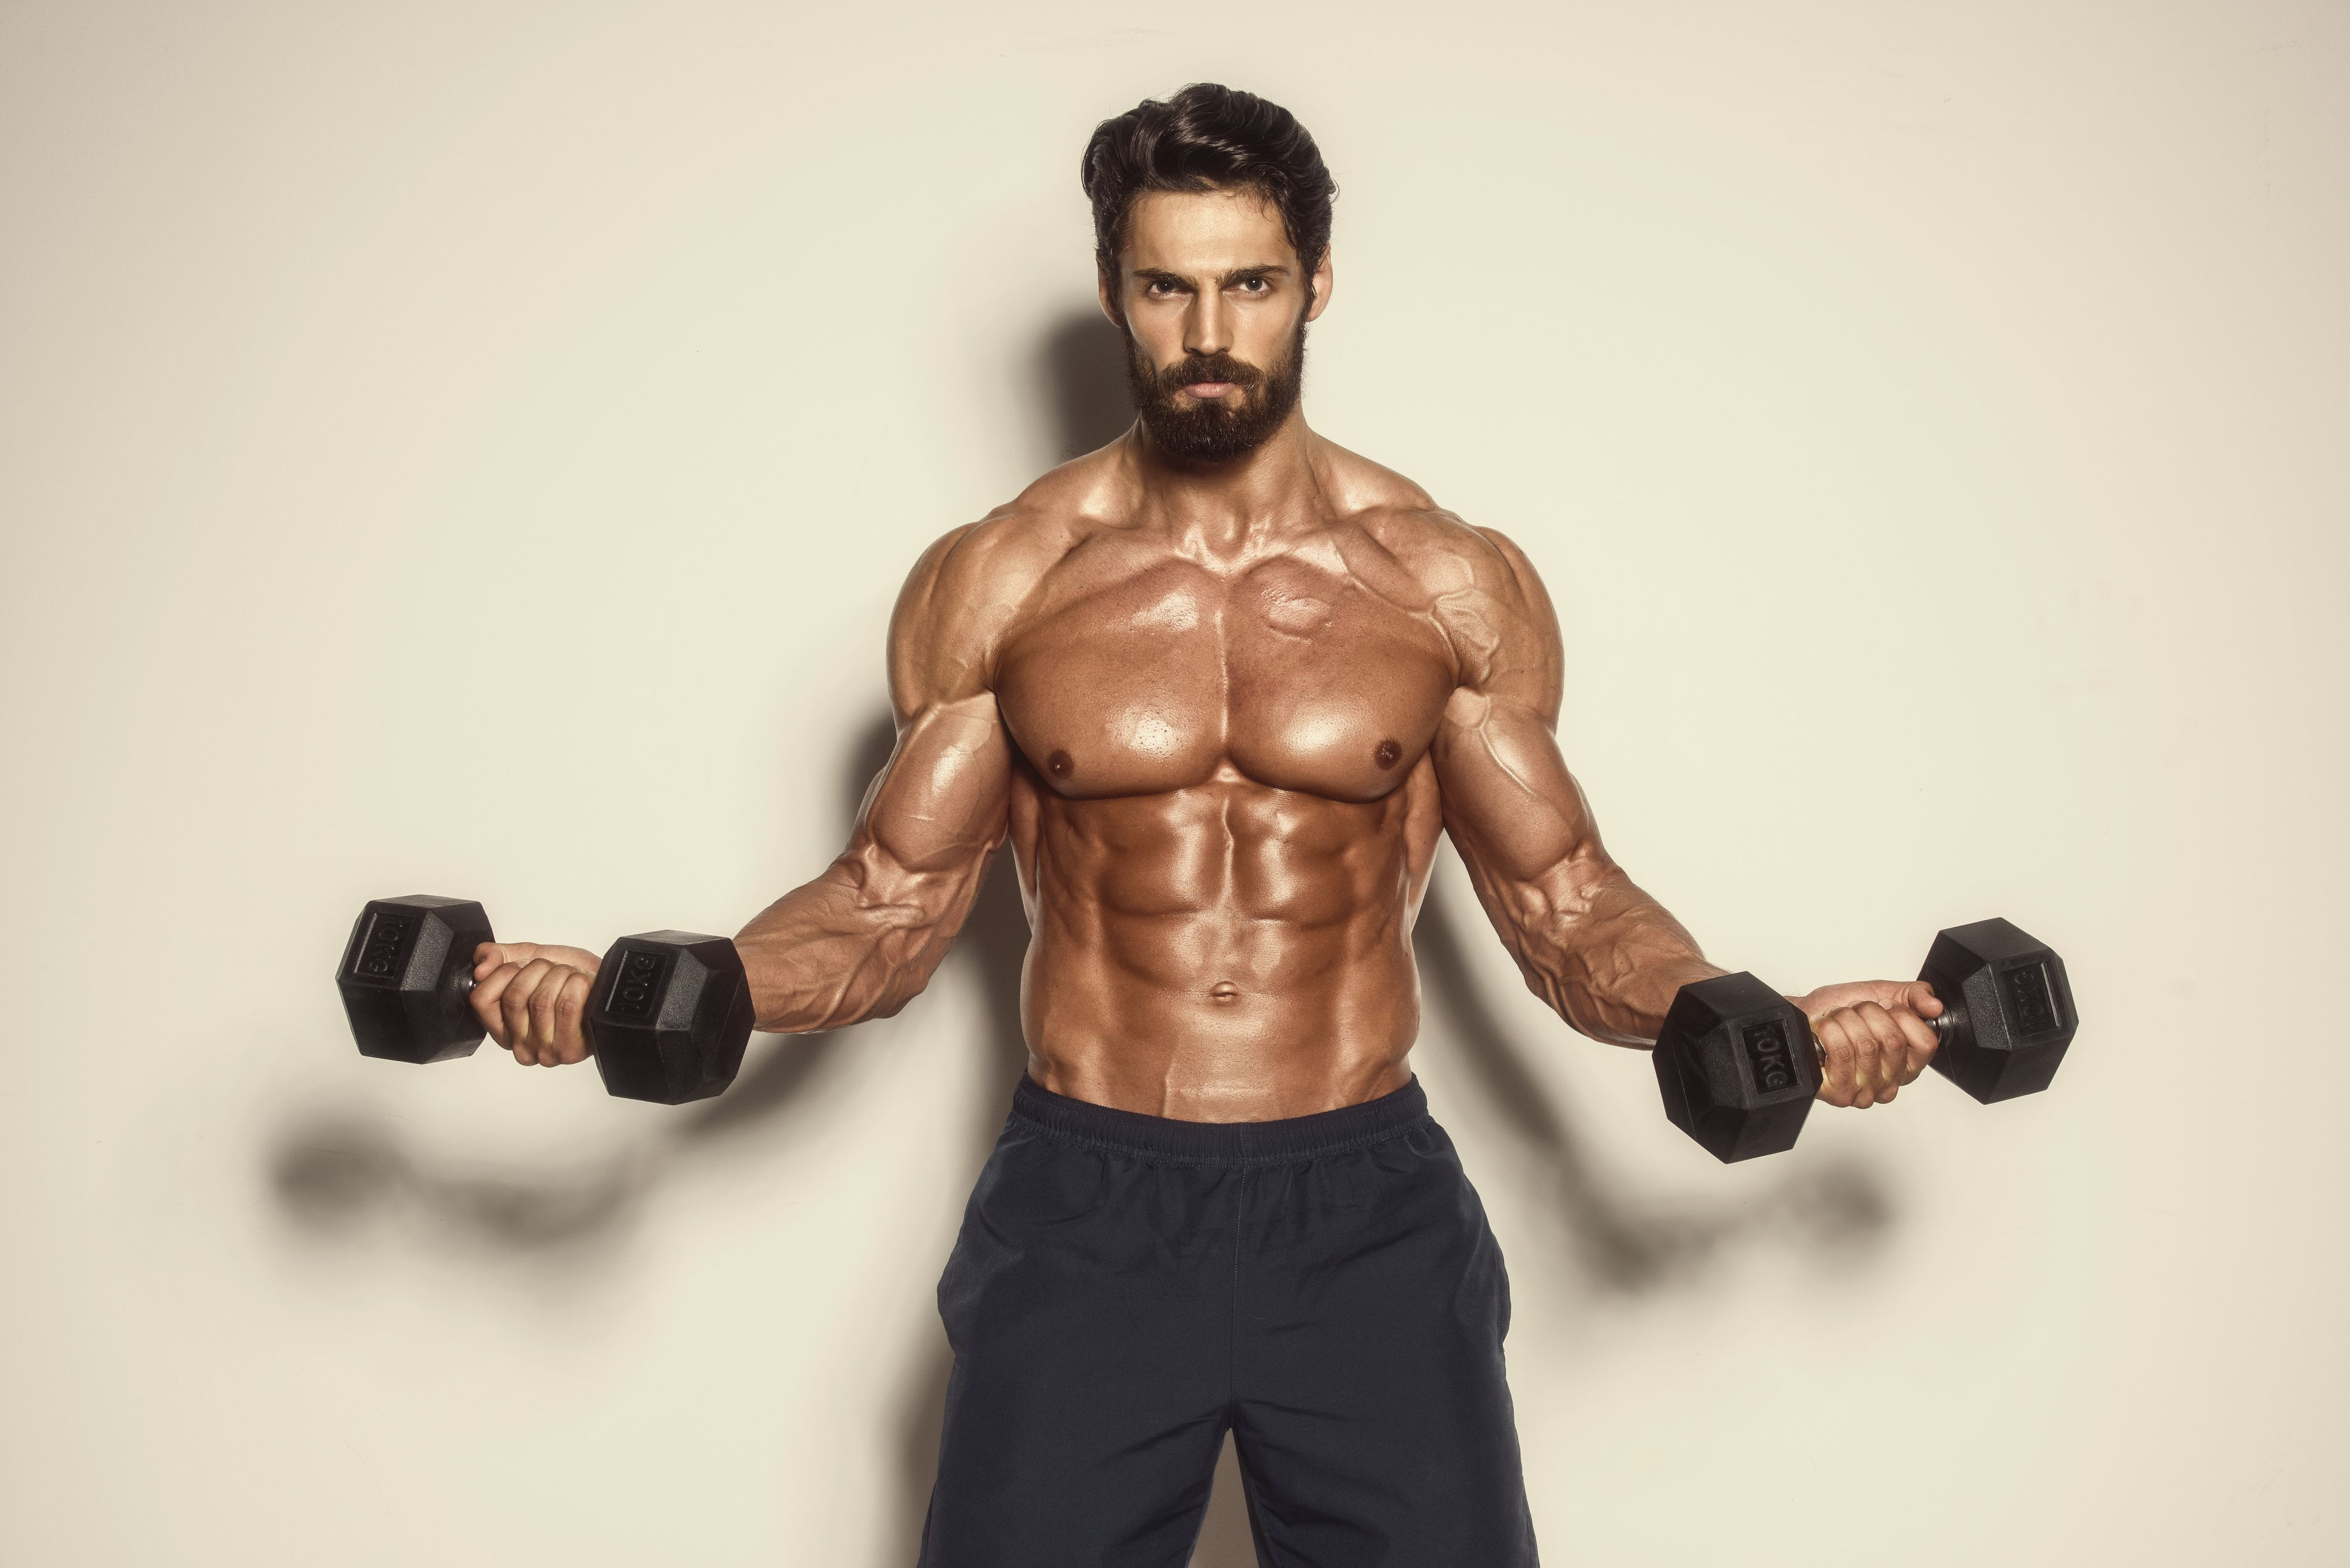 the home dumbbell workout for a six pack in three weeksbody building workout